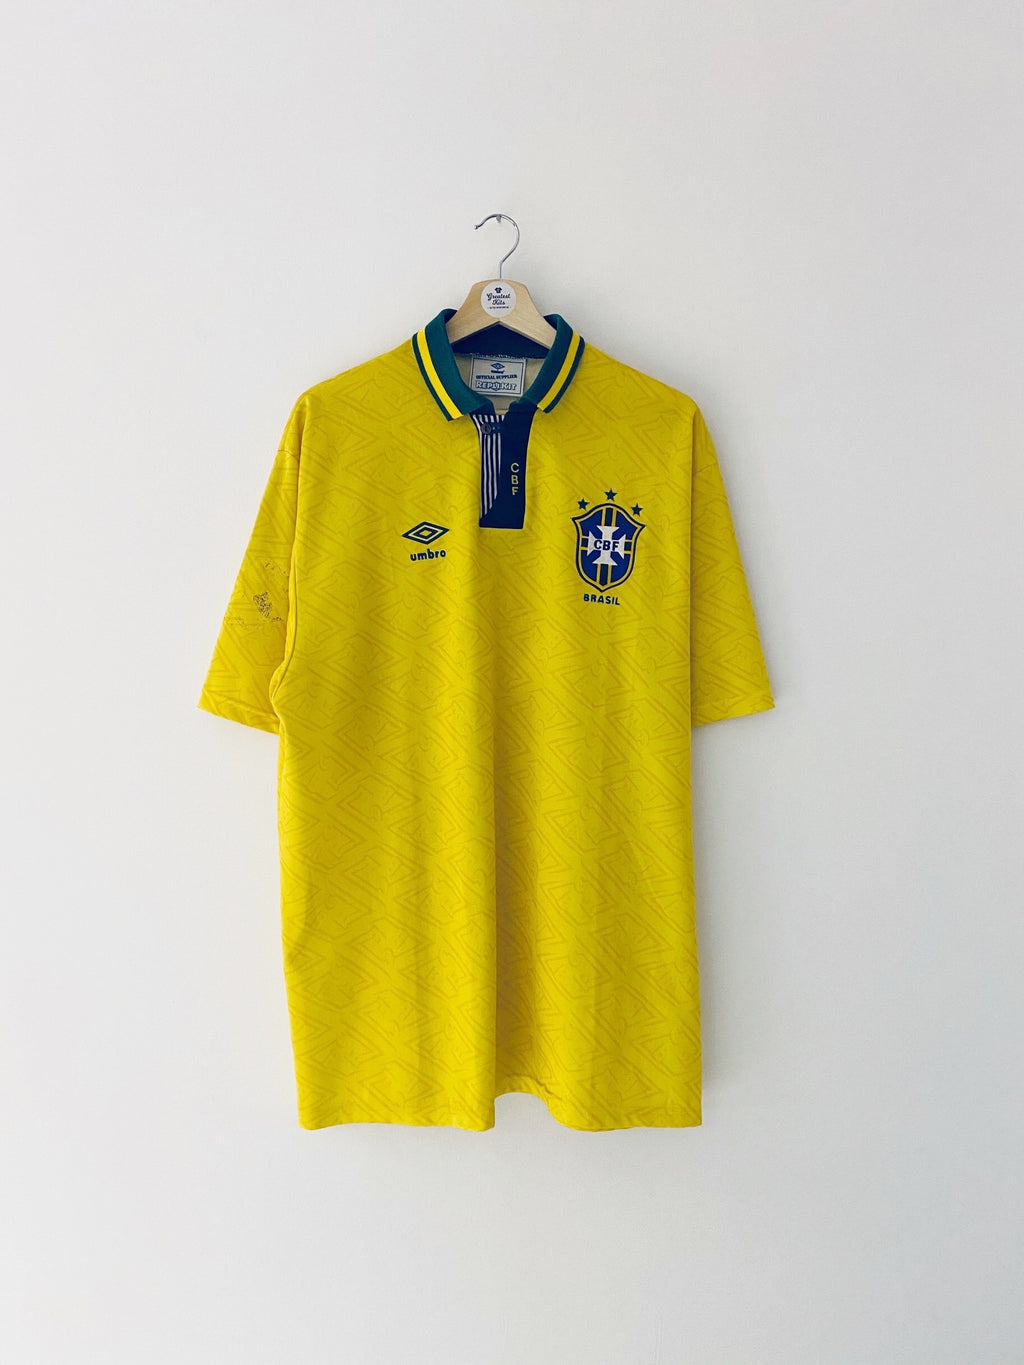 1991/93 Brazil Home Shirt (XL) 7.5/10